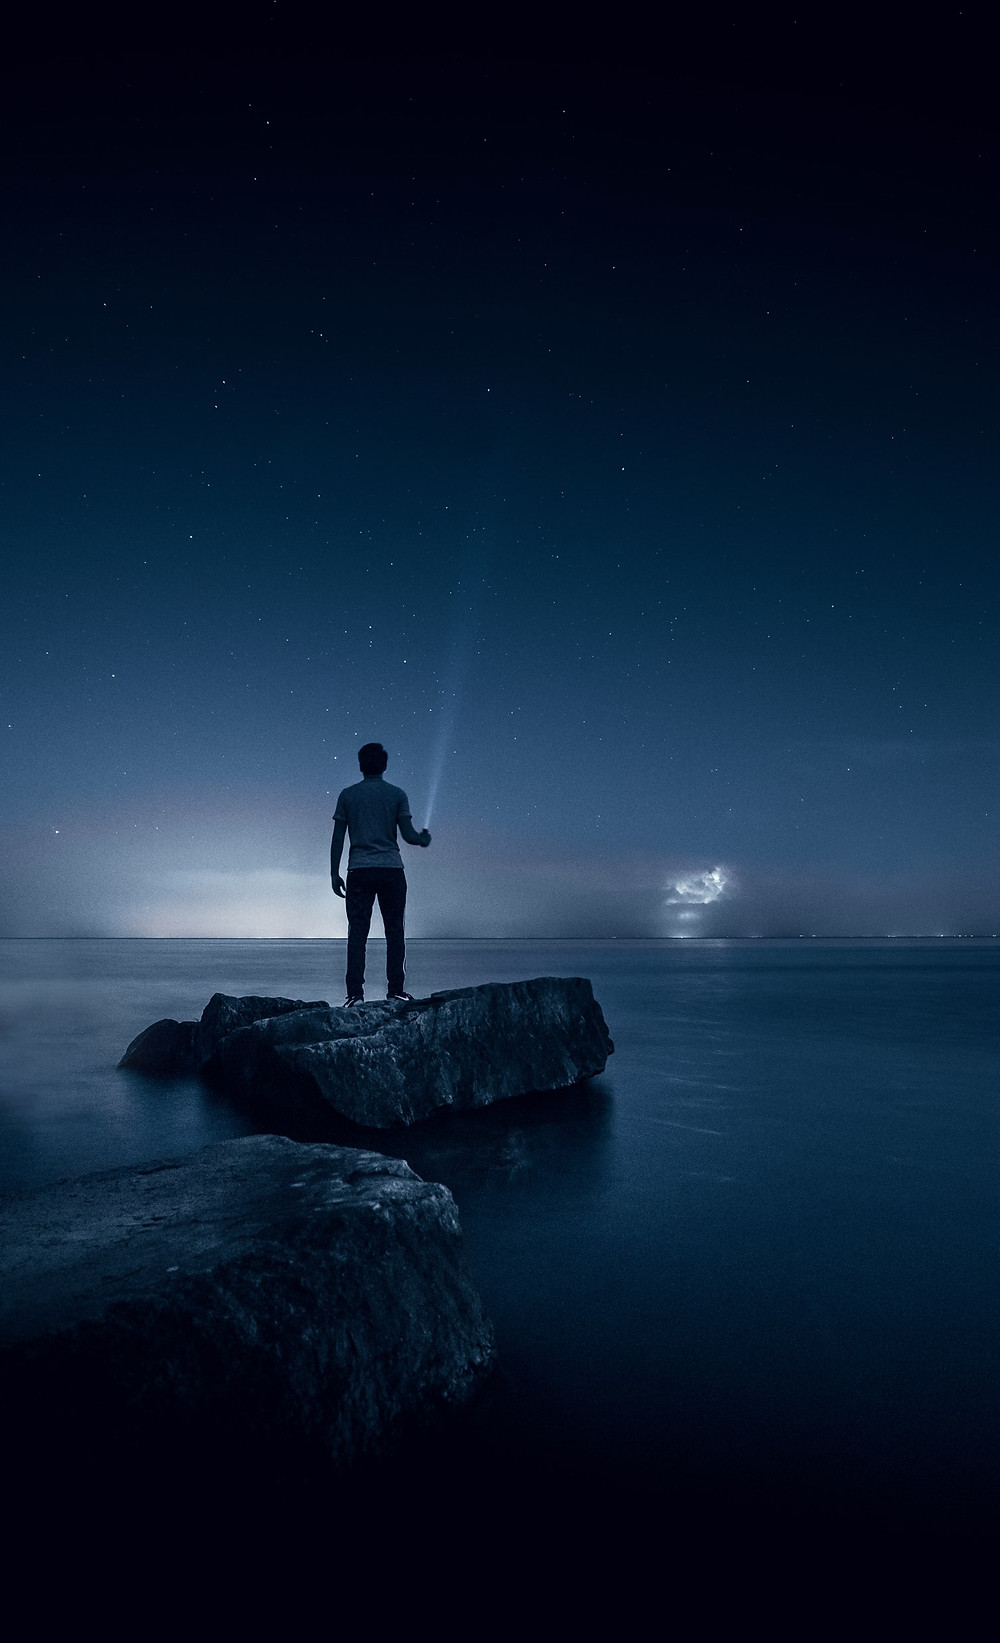 Person Stands On Rock Sticking Out Of Water, Pointing A Beam Of Light Towards A Bright Starry Sky Everything Has A Blue Cast How Can I Make My Life Exciting Relationship Break-Up Self Improvement Lifestyle Advice Blog Fabsolutely Co